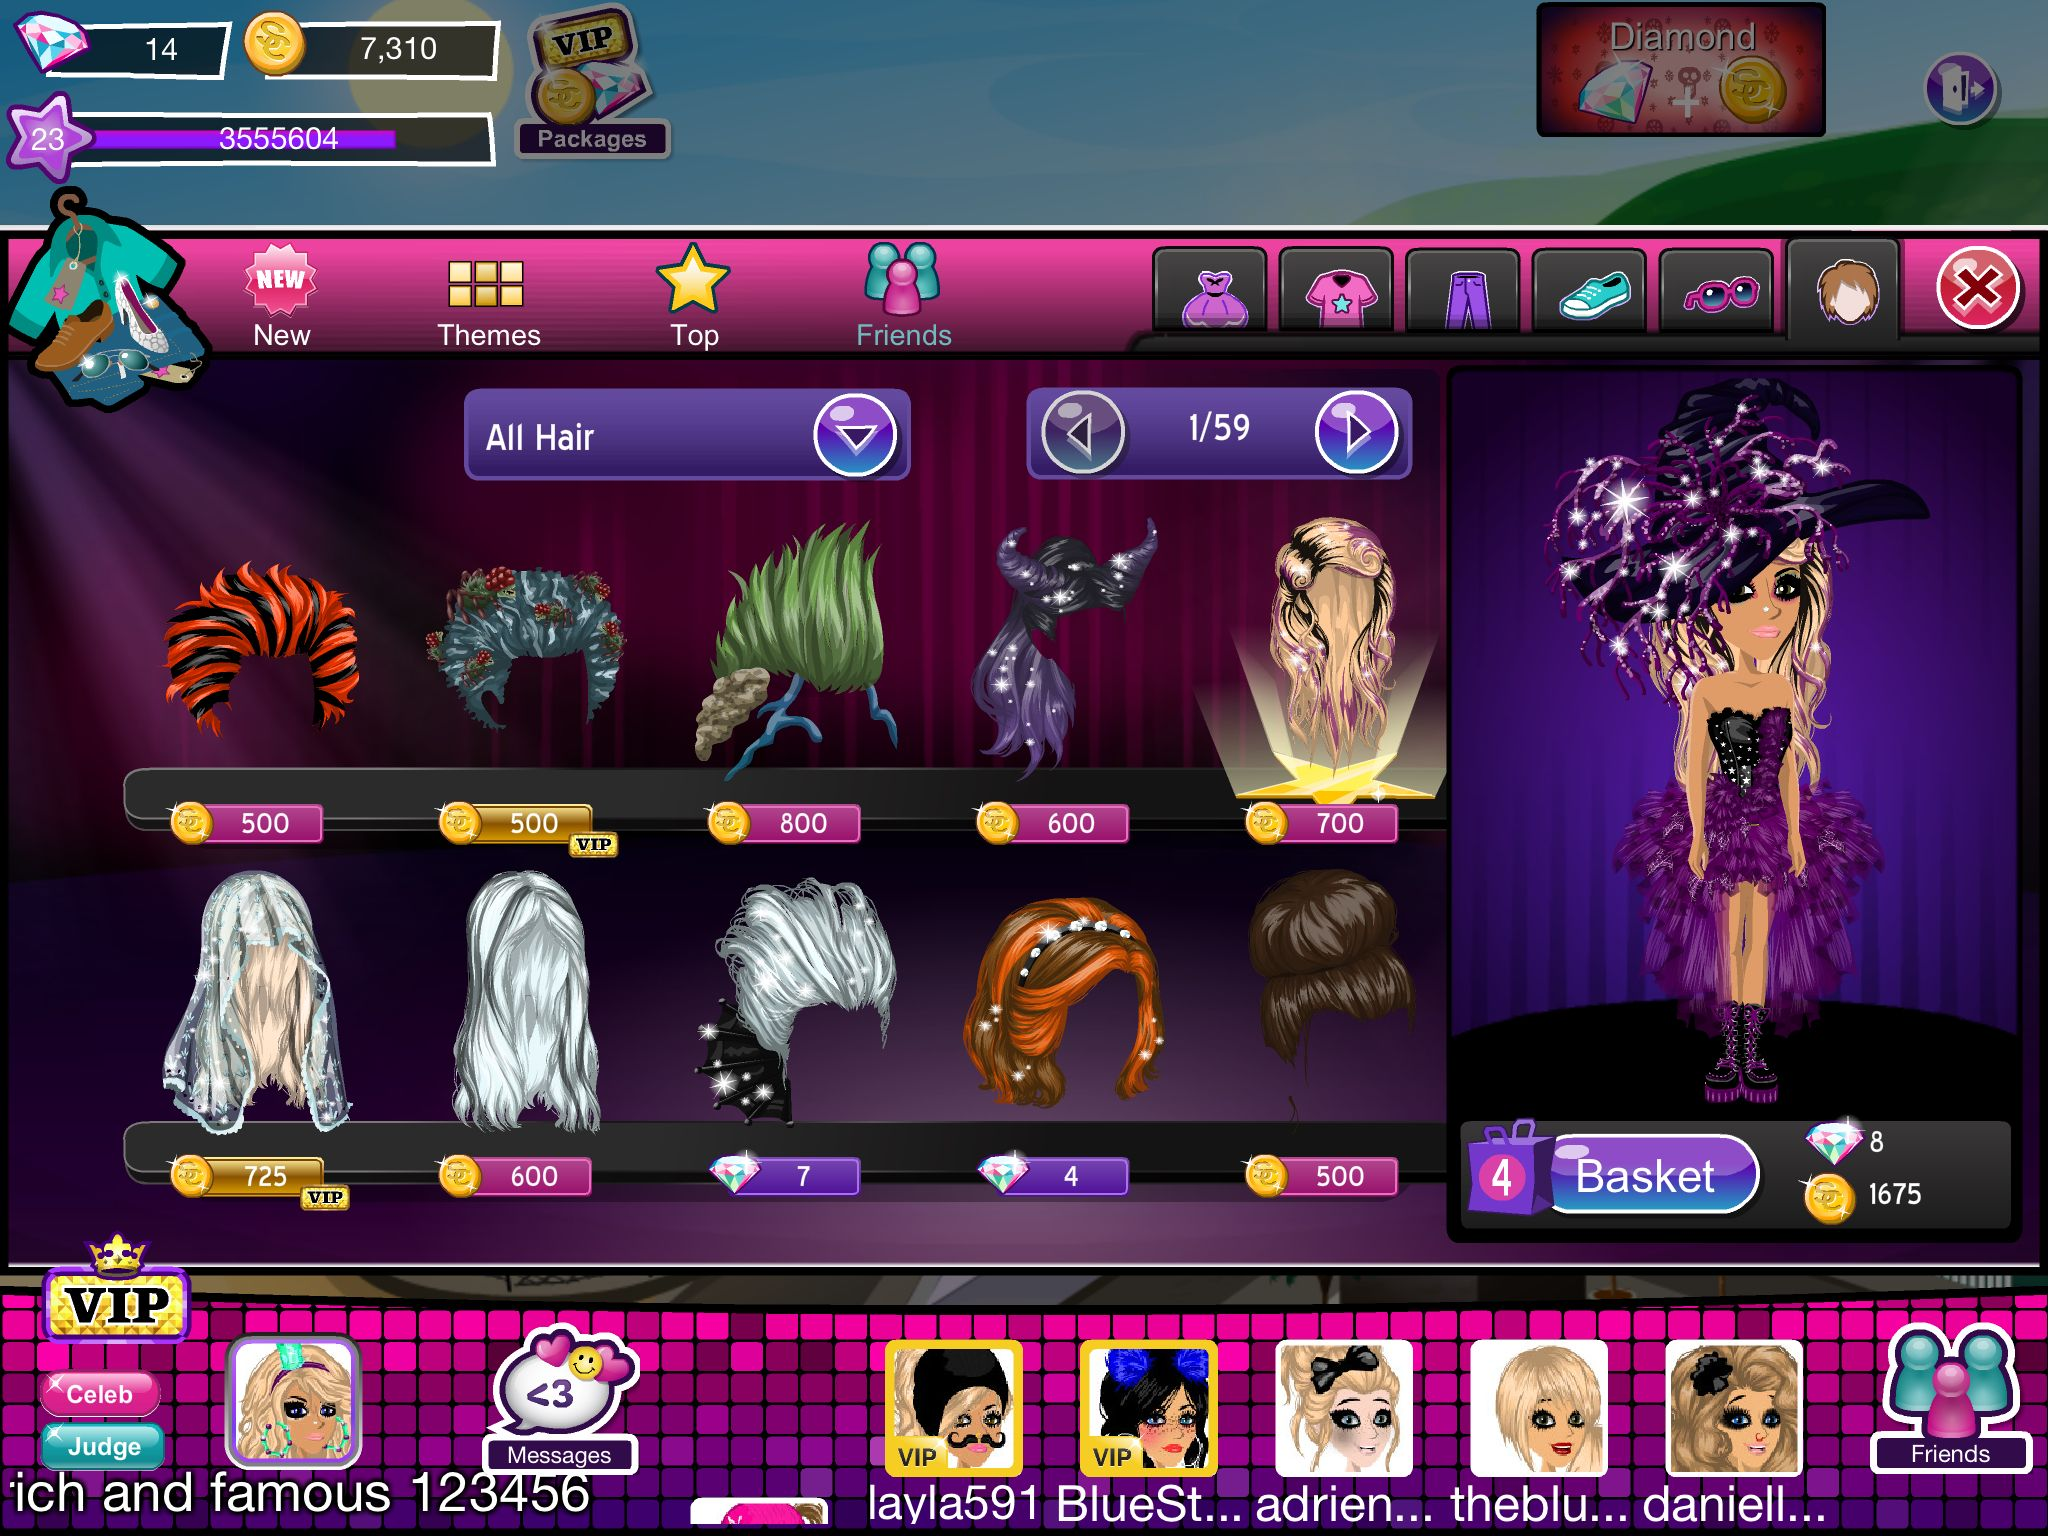 Me On The Ipad App For Msp